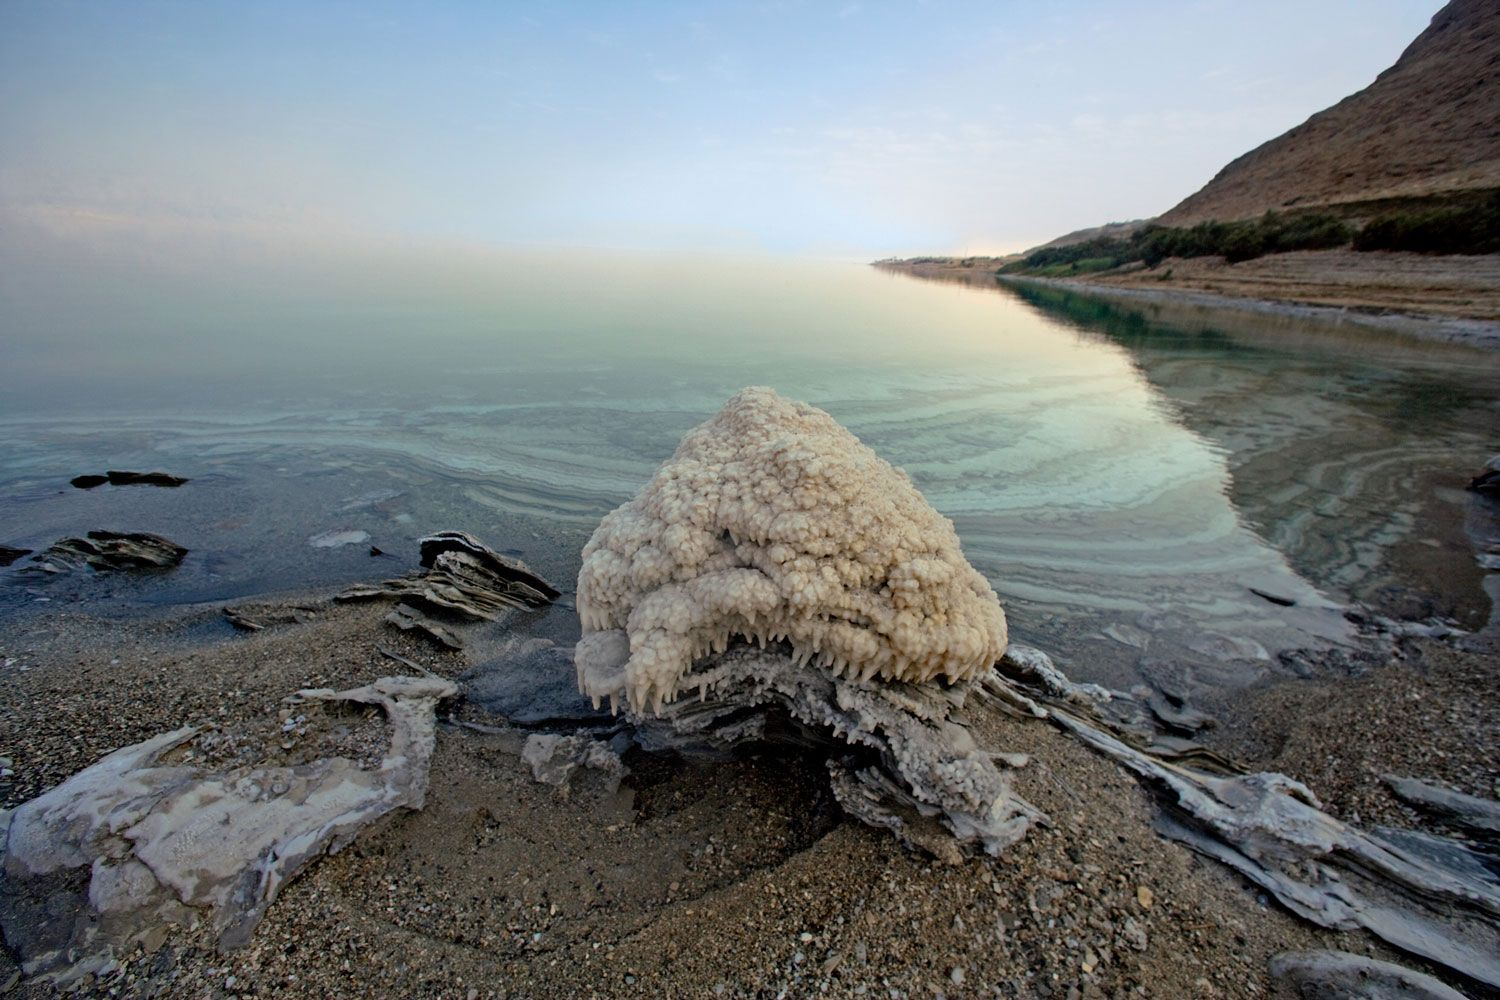 Landscape from the Dead Sea